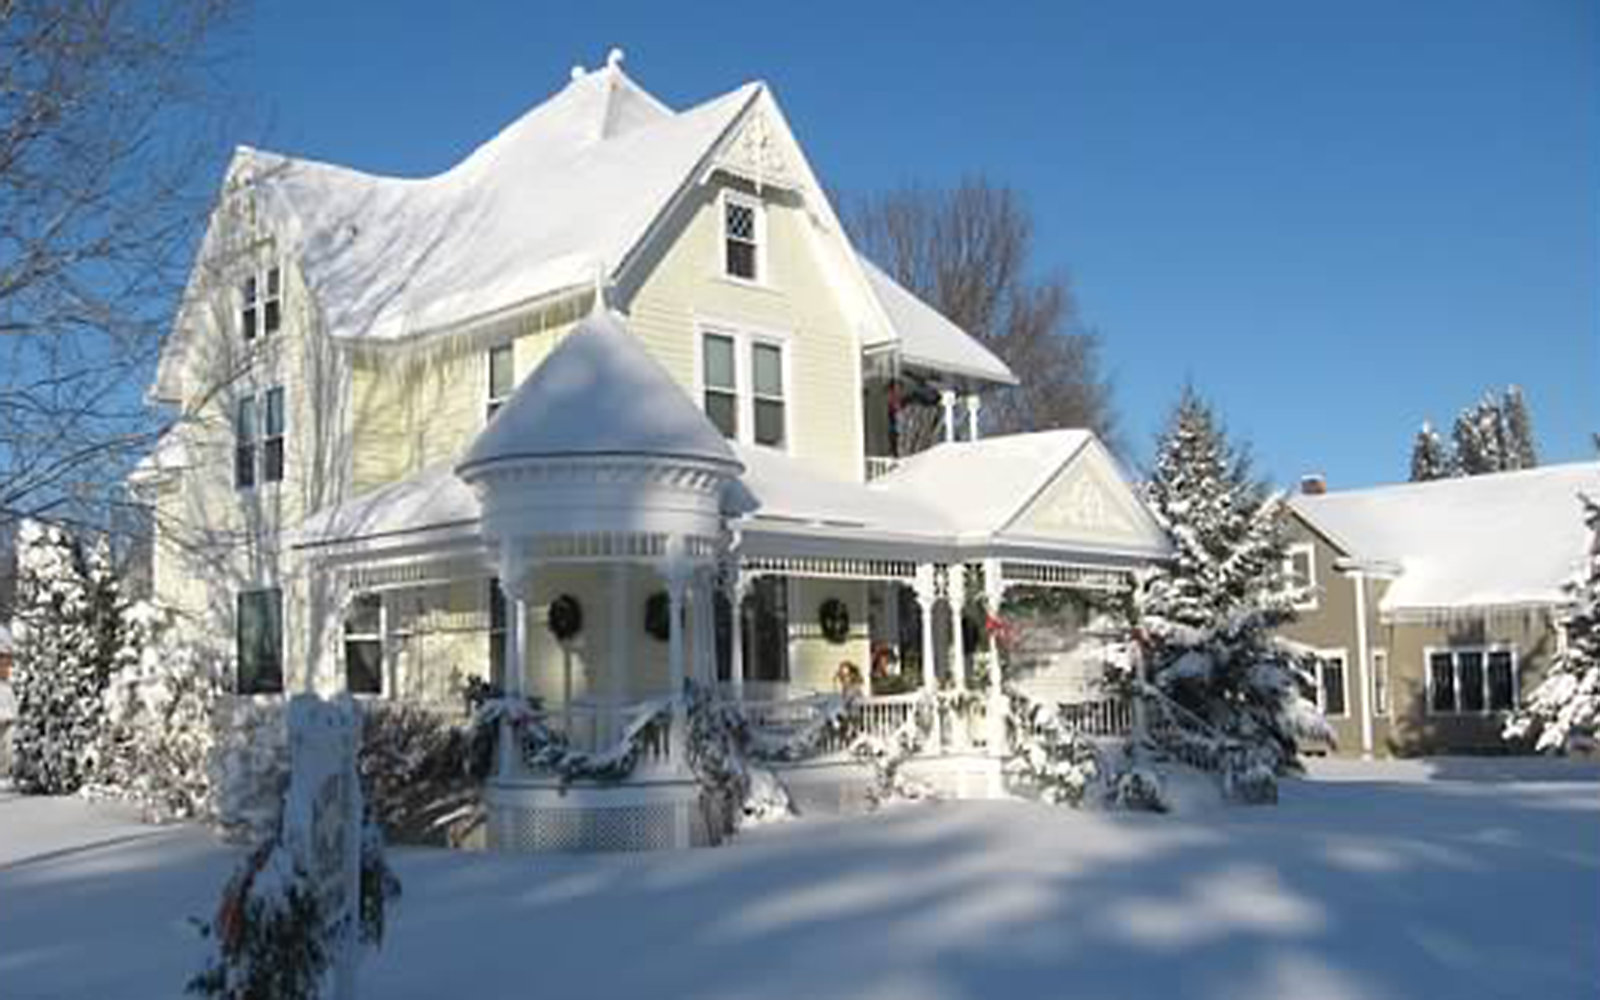 romantic Anna V's B&B in snowy Lanesboro, MN